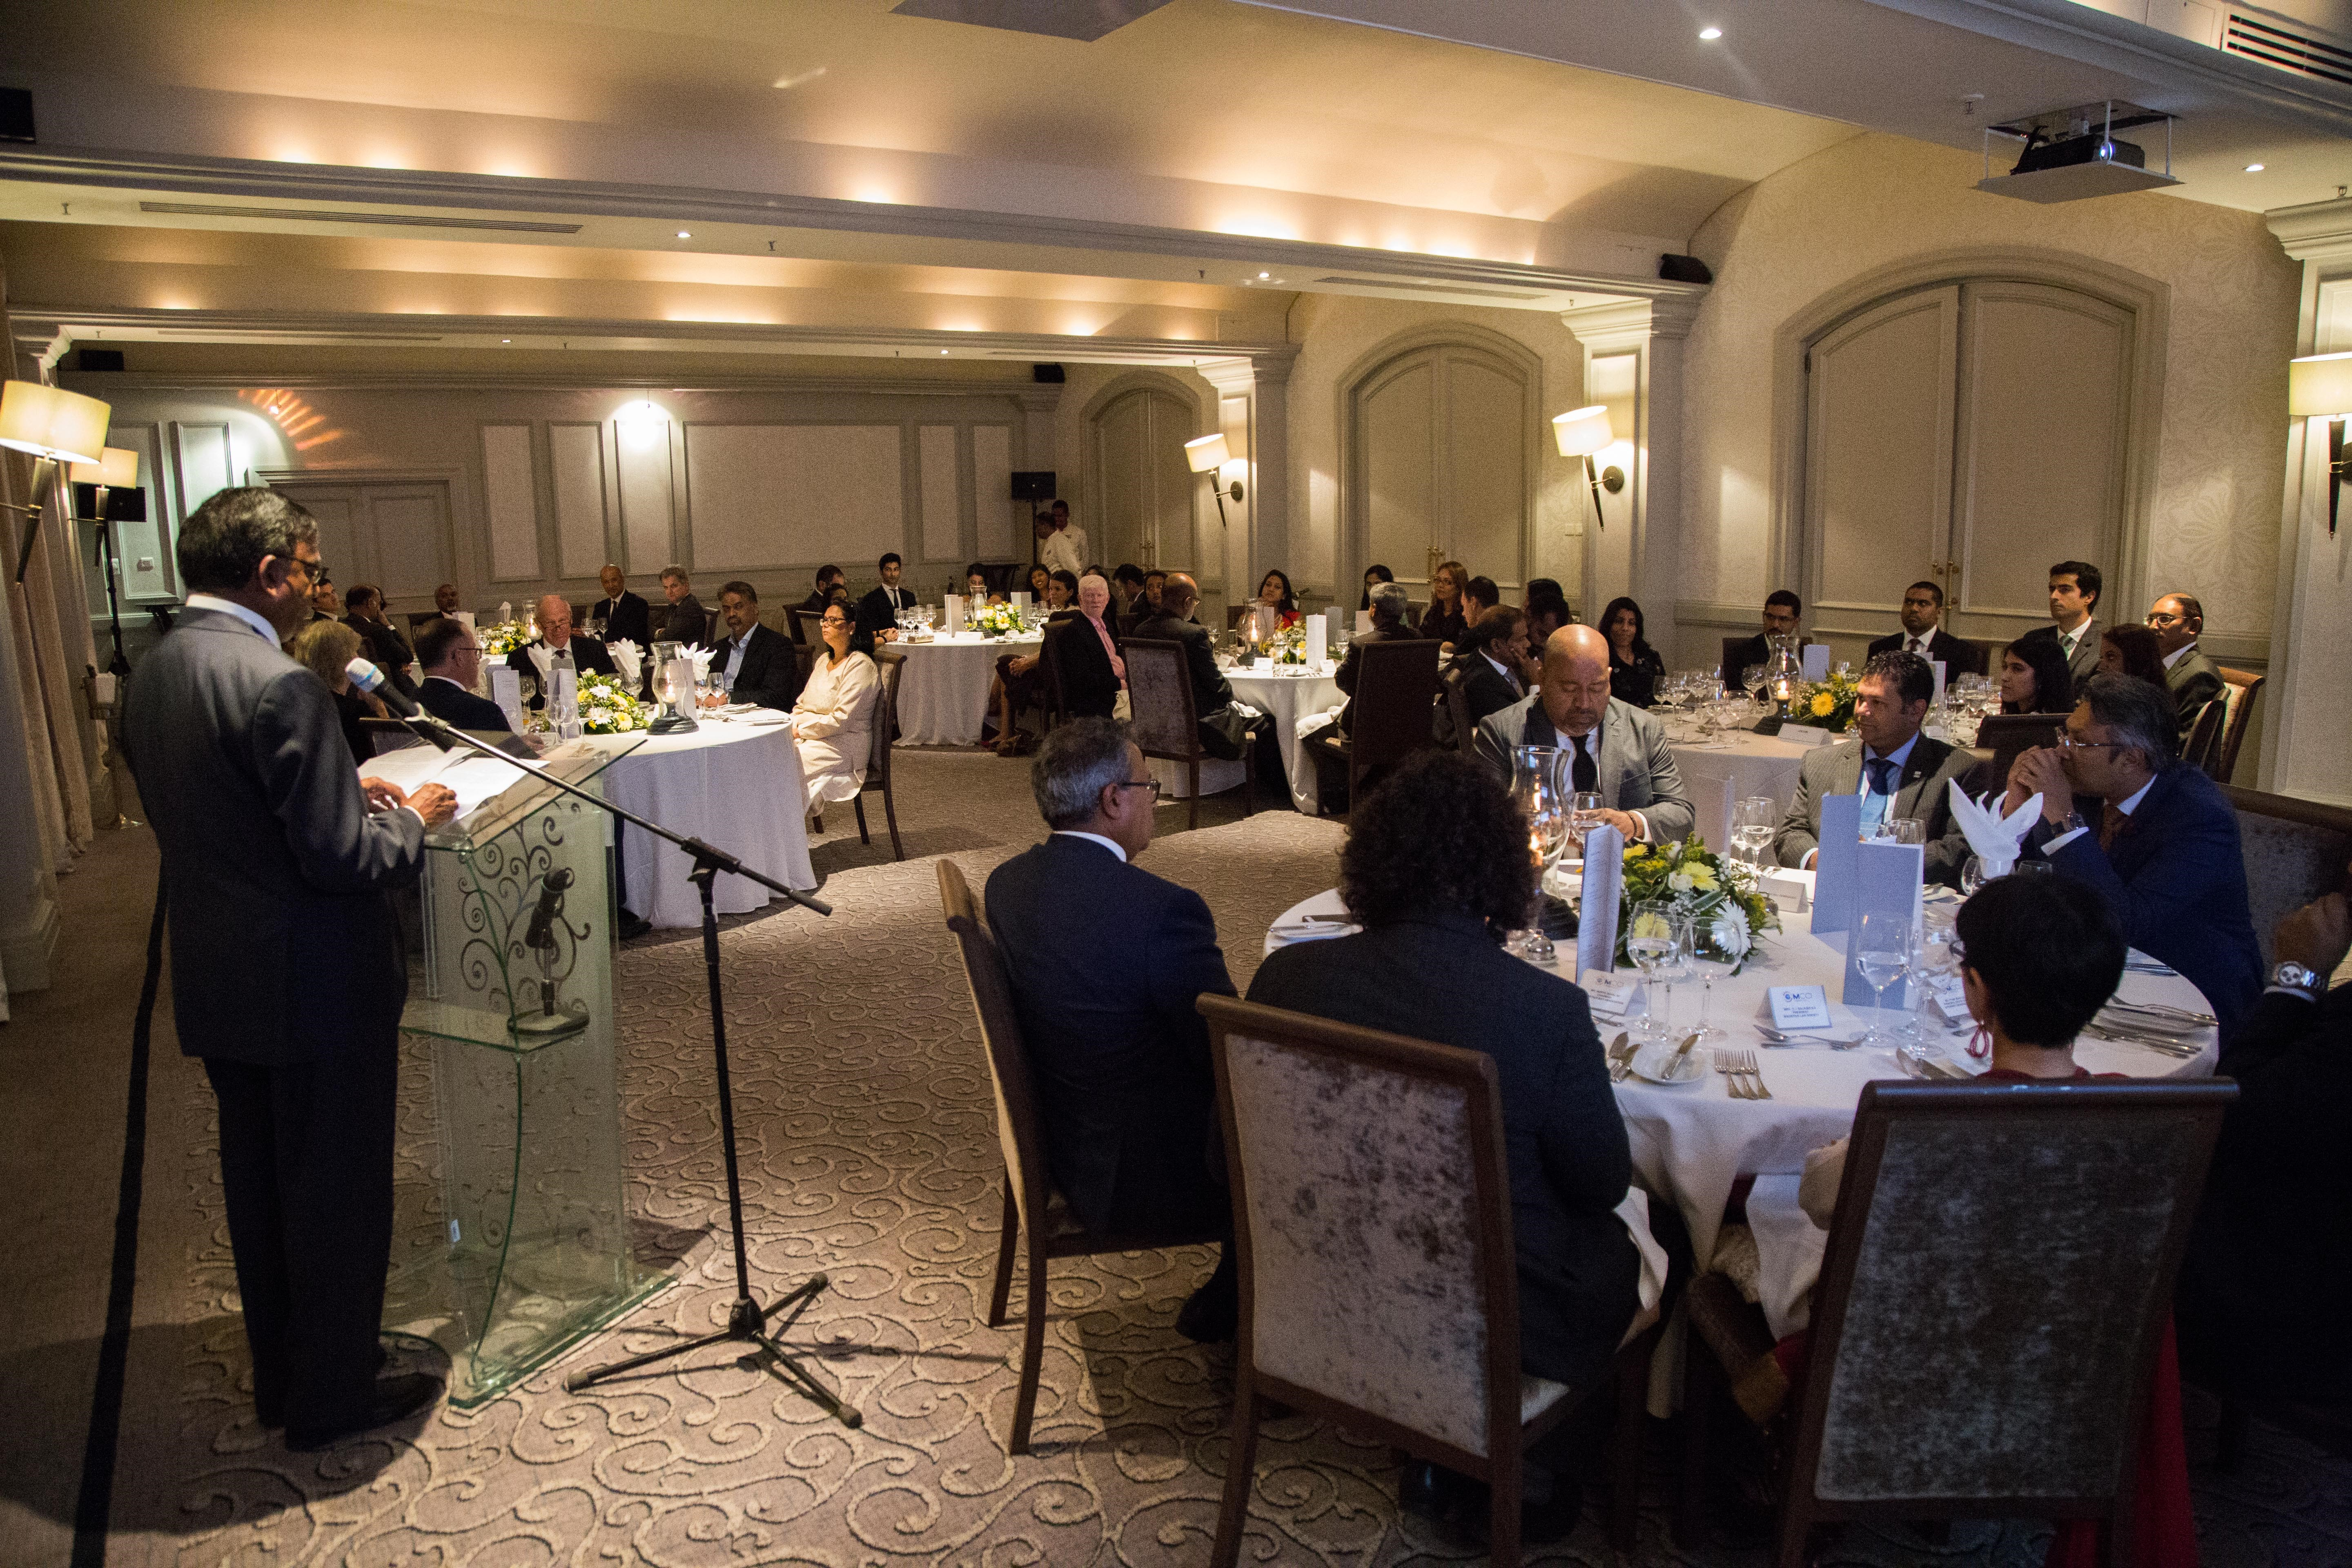 Gala Dinner held in honor of Lord Neuberger's visit to Mauritius